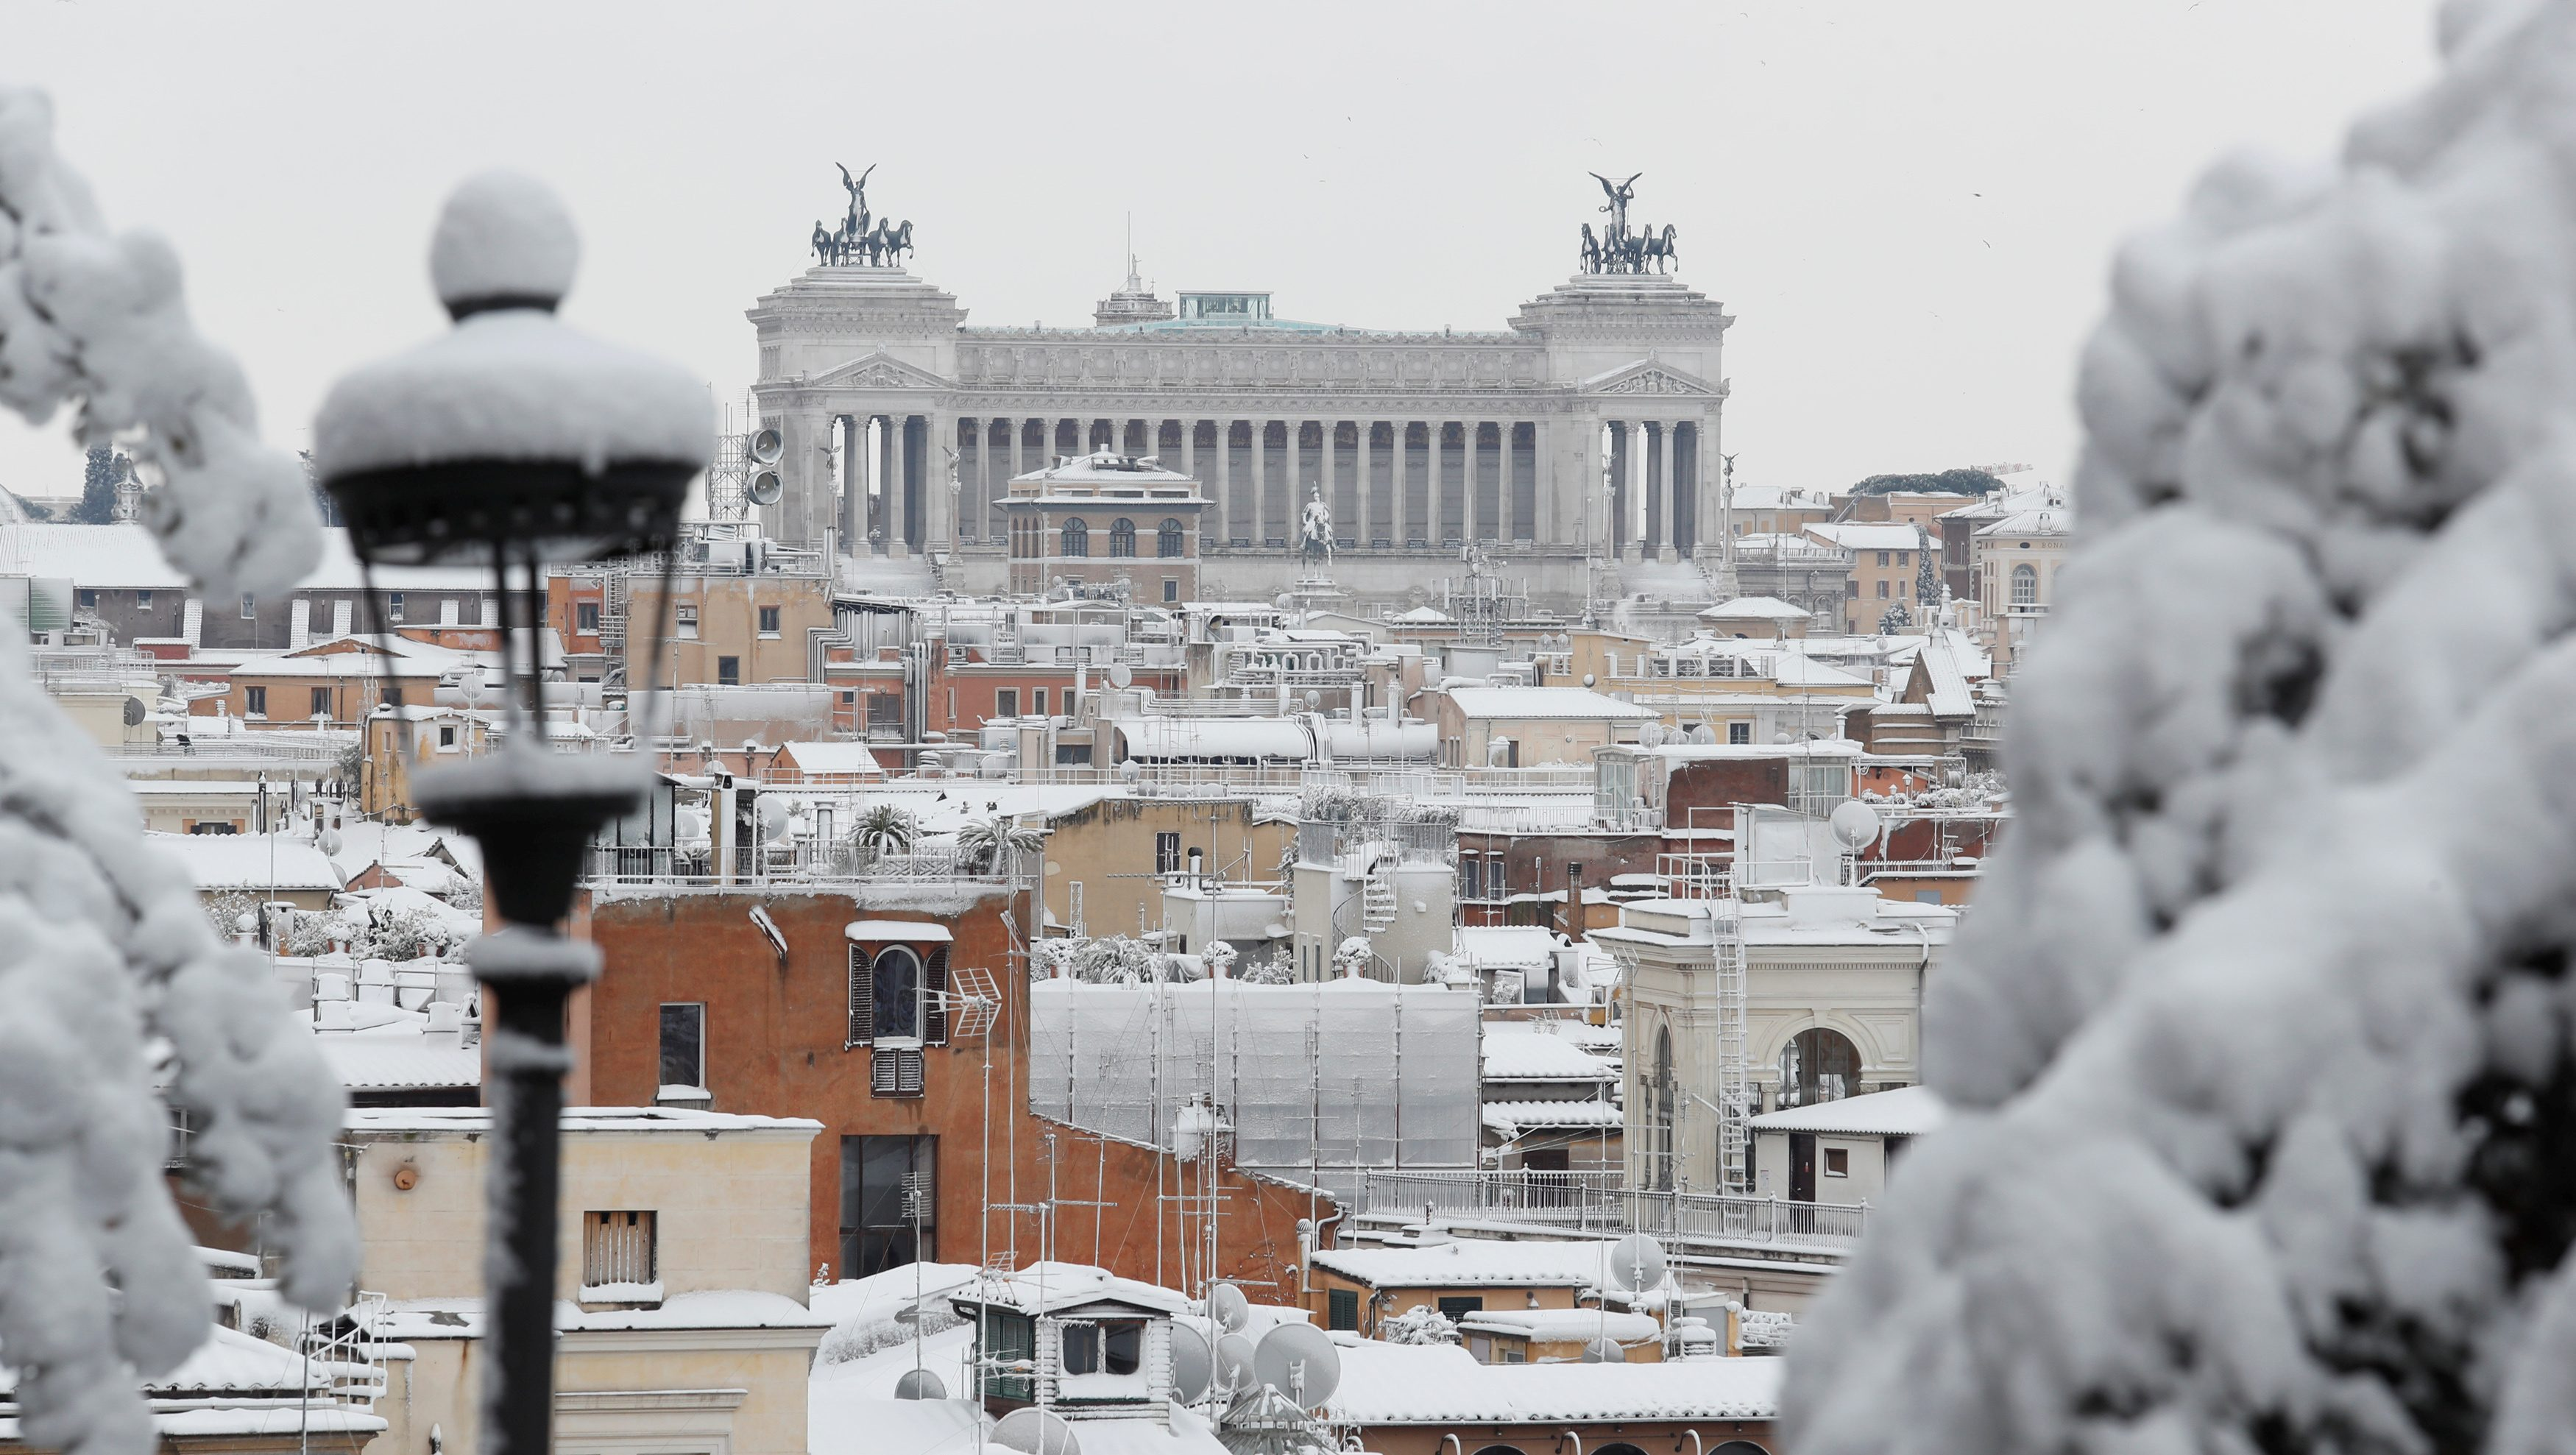 Roofs are seen covered in snow during a heavy snowfall in downtown Rome